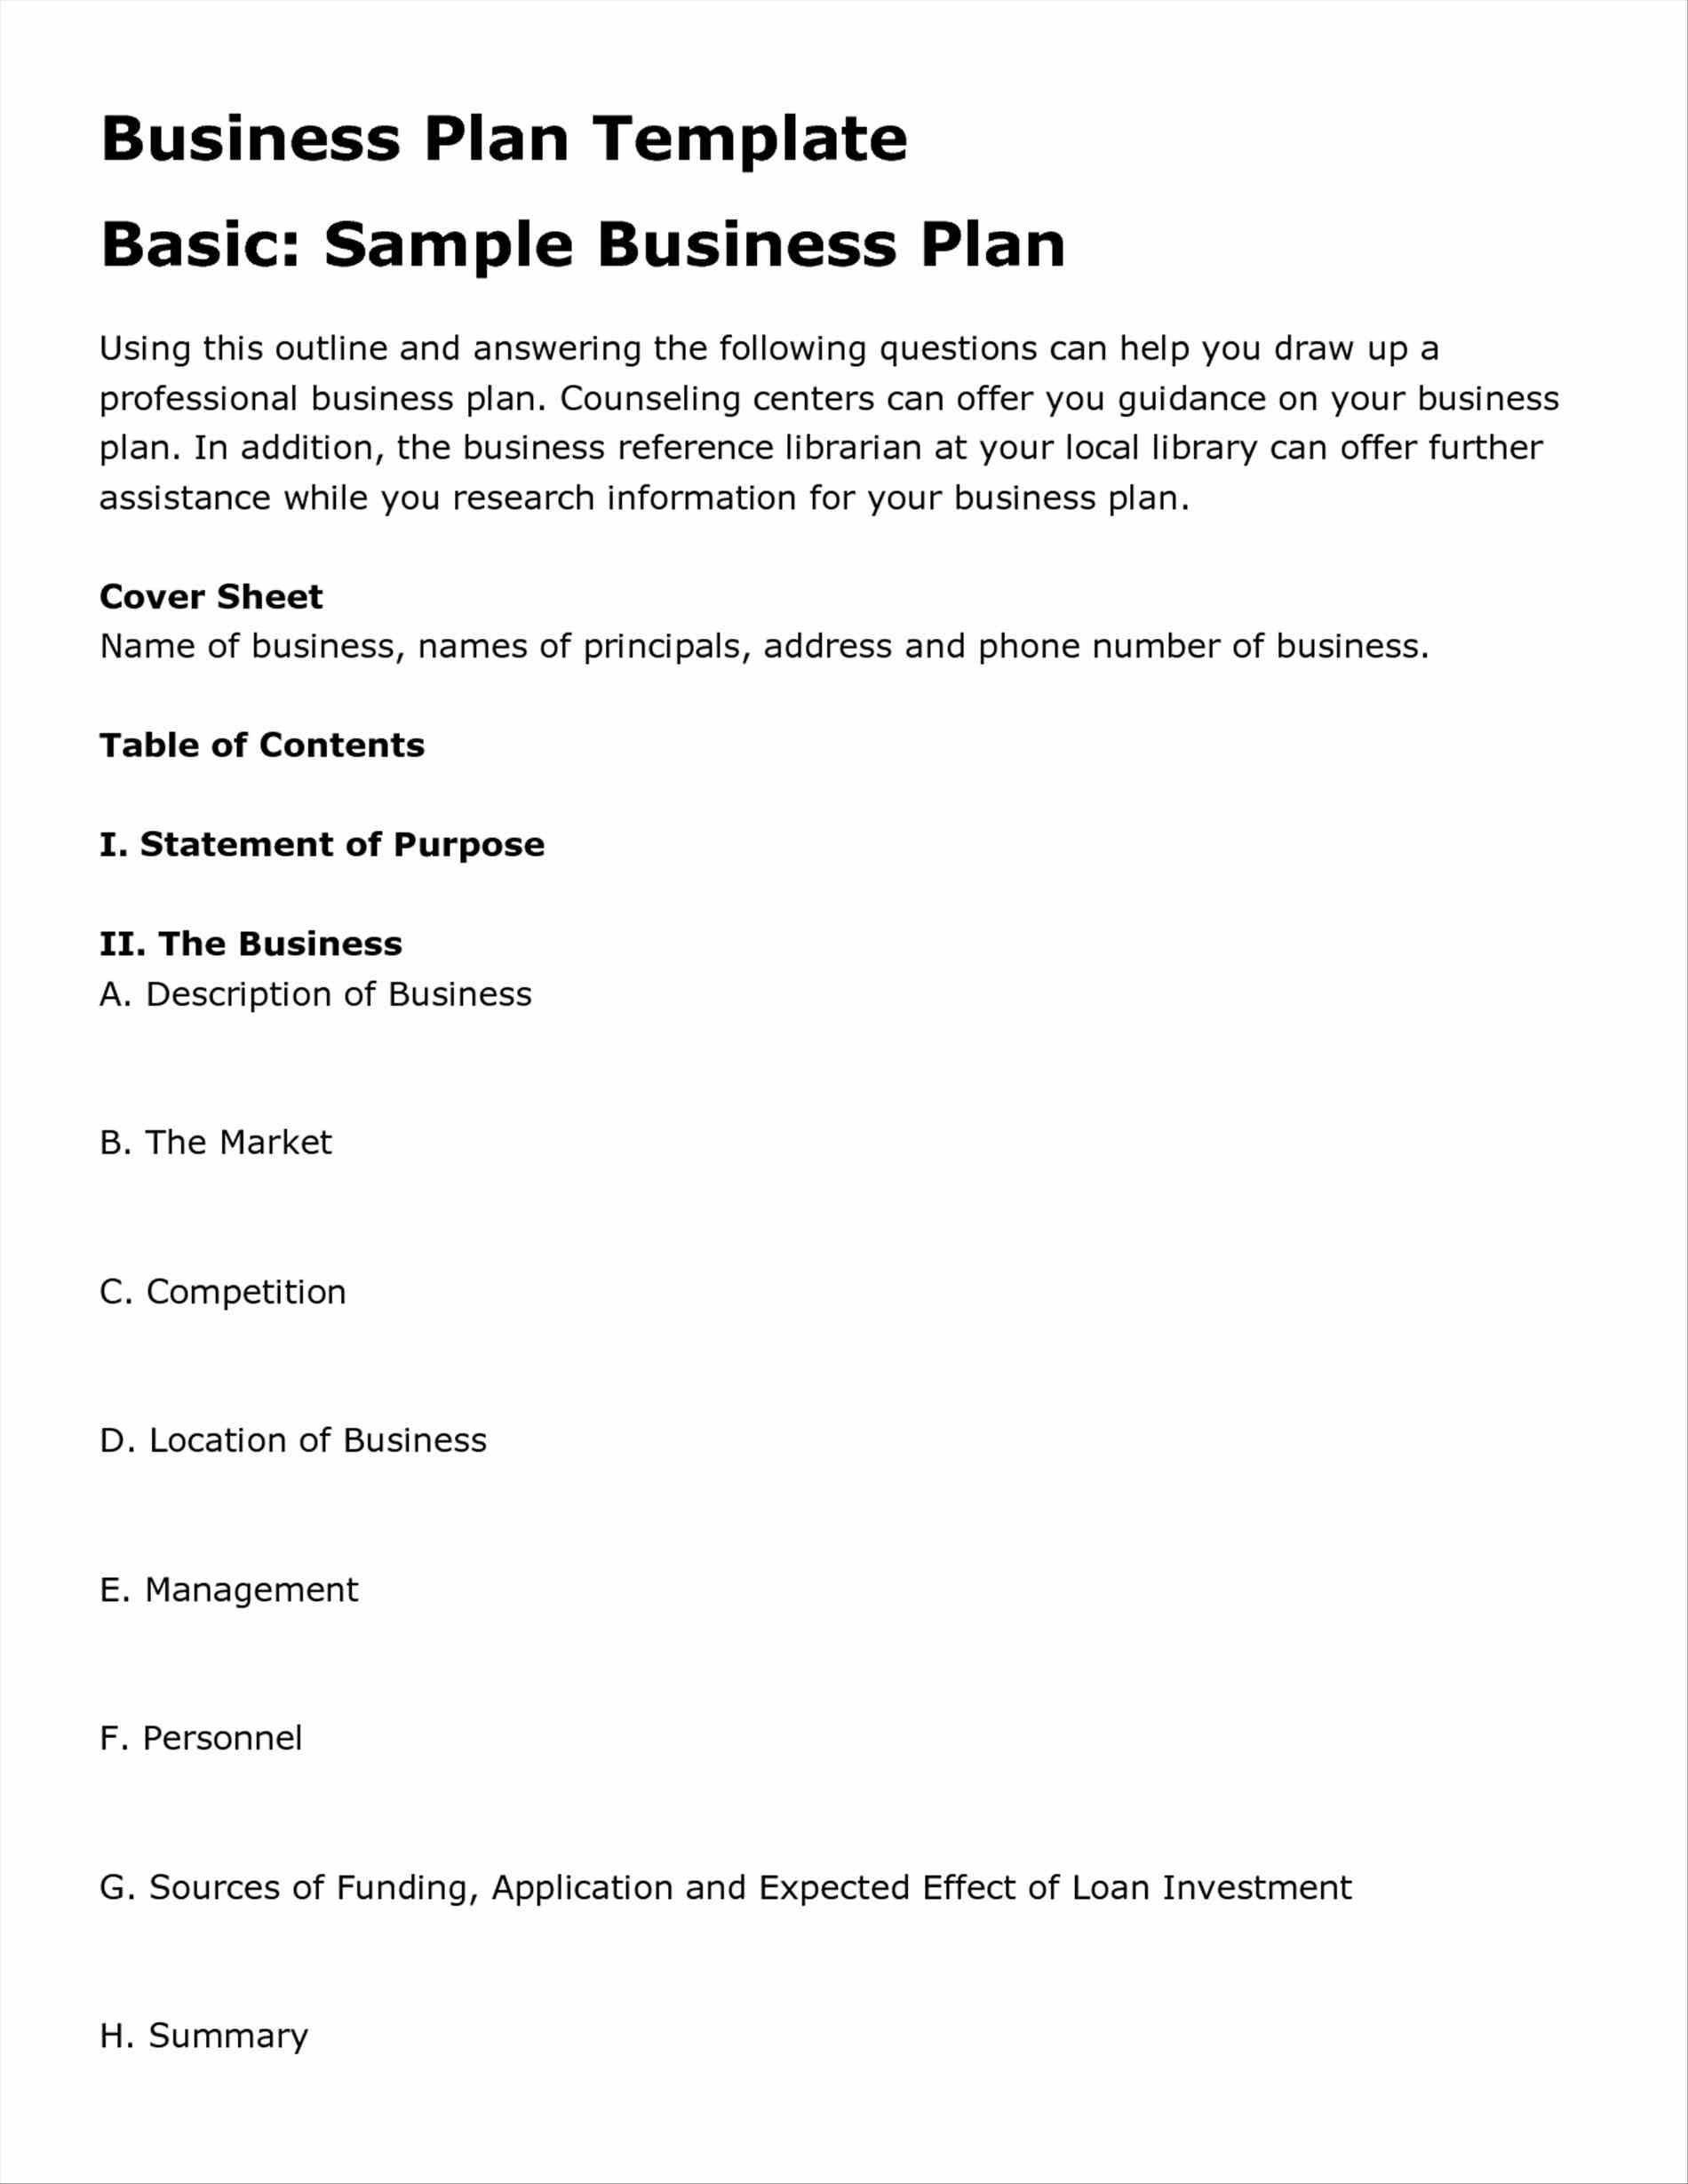 Business plan template restaurant templates in word excel pdf free business plan template restaurant templates in word excel pdf free cafe business plan template restaurant business plan templates in word excel friedricerecipe